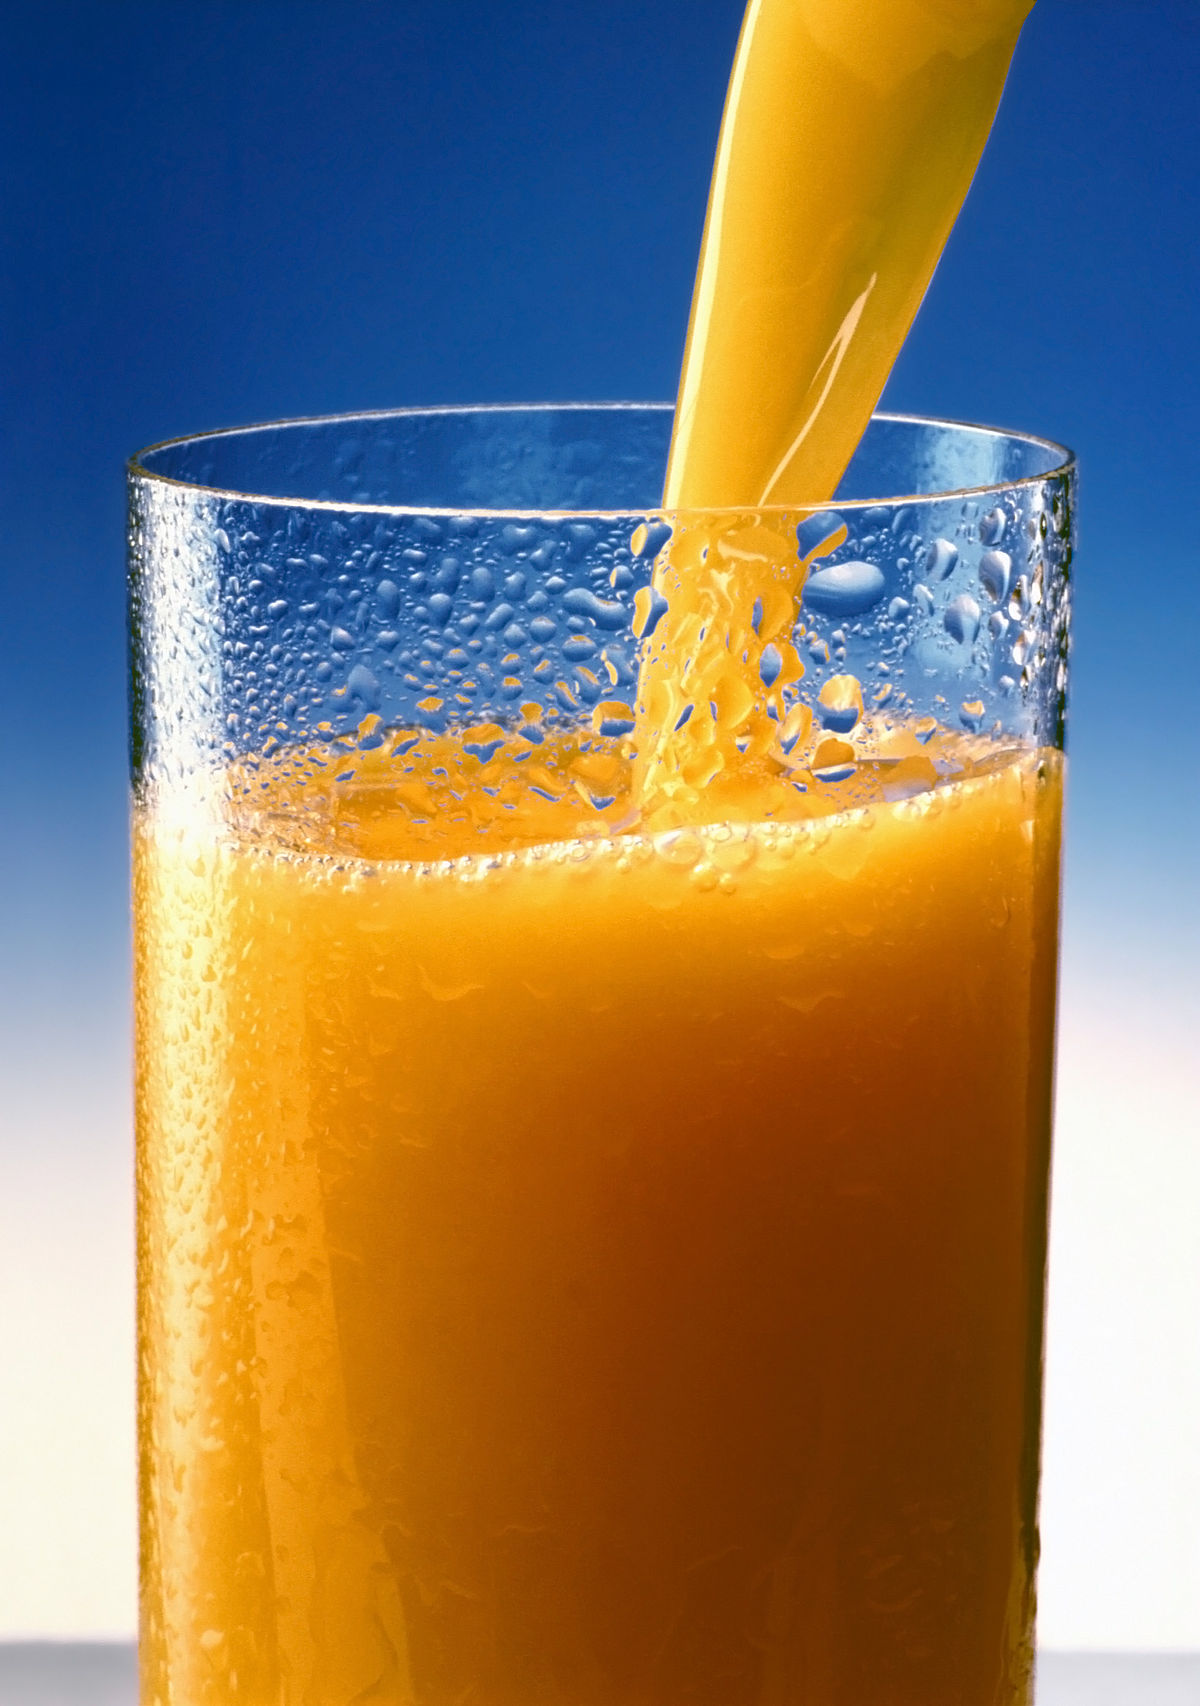 Orange juice - Wikipedia